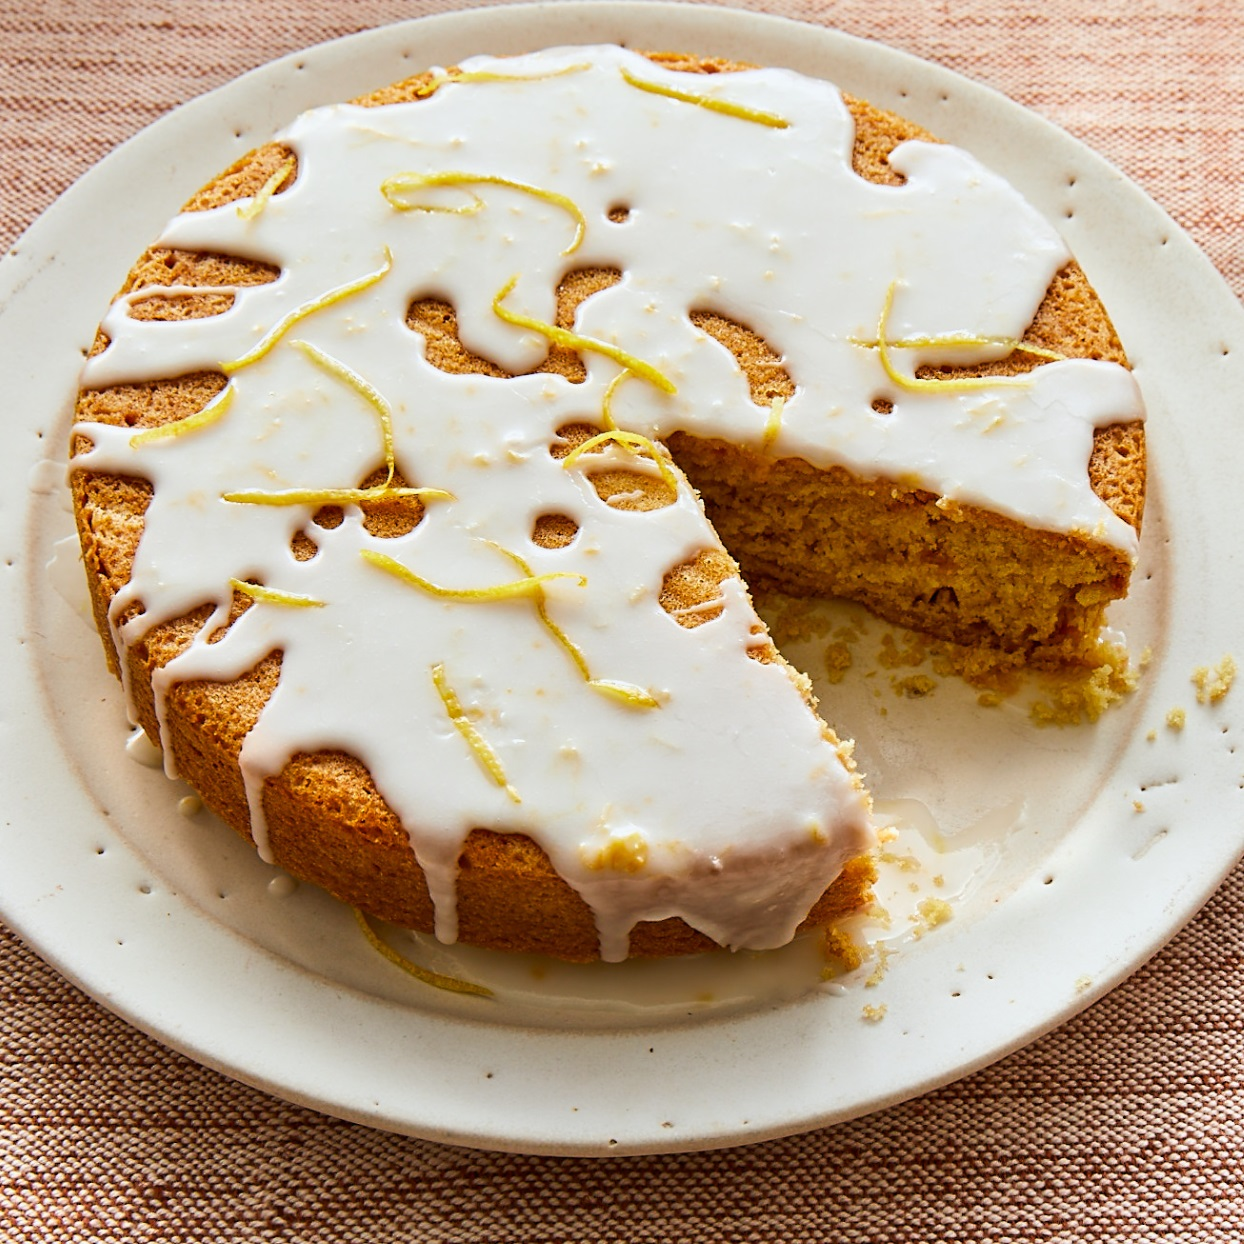 You don't have to be vegan to enjoy this vegan lemon cake! It's moist, delicious and plenty lemony thanks to a combination of lemon juice and zest. A glaze made with lemon juice, confectioners' sugar and almond milk adds a sweet-tangy finish. Source: EatingWell.com, January 2020